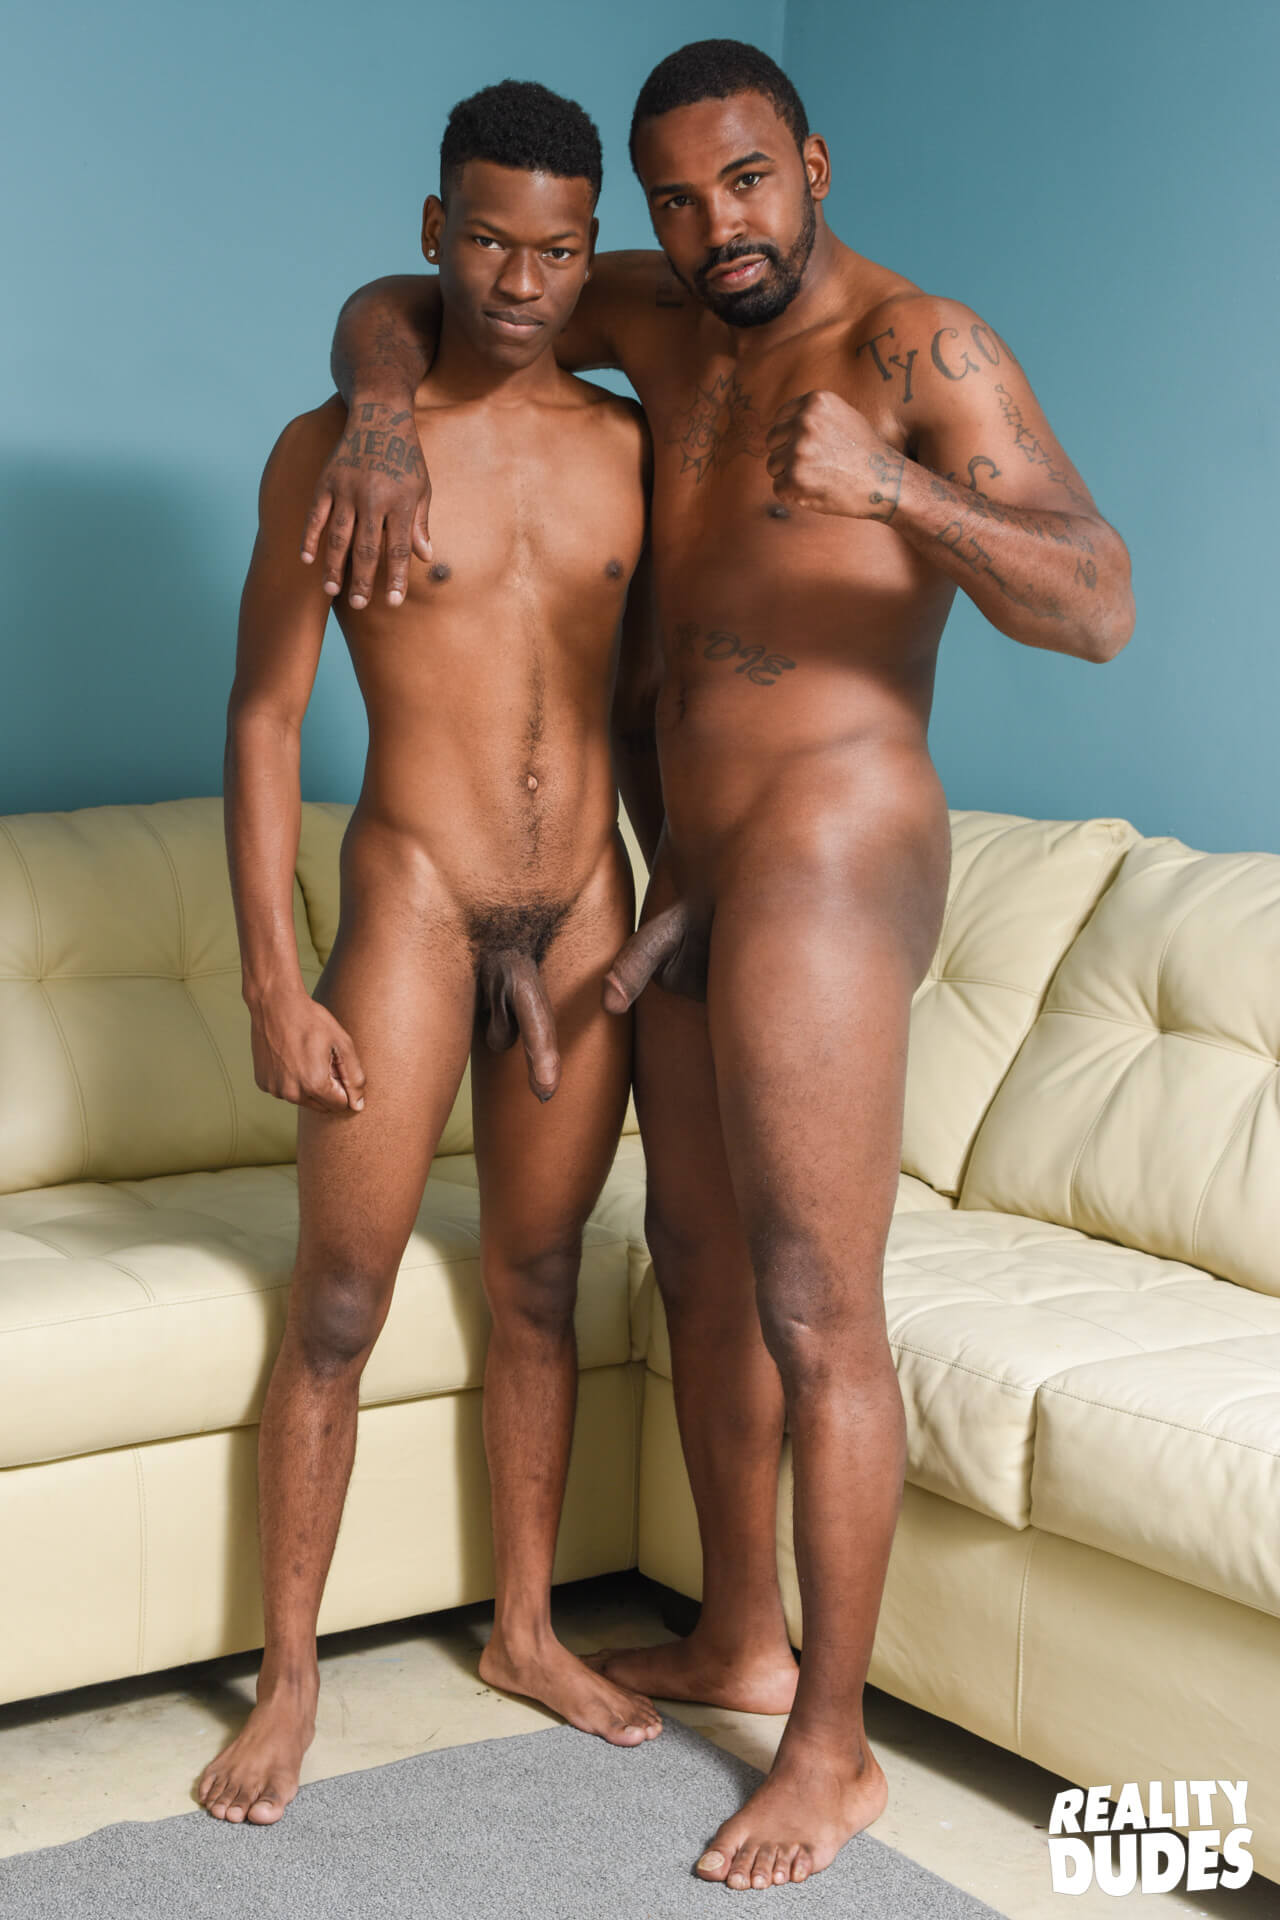 reality dudes reality thugs philly mack attack kylan gay porn blog image 21